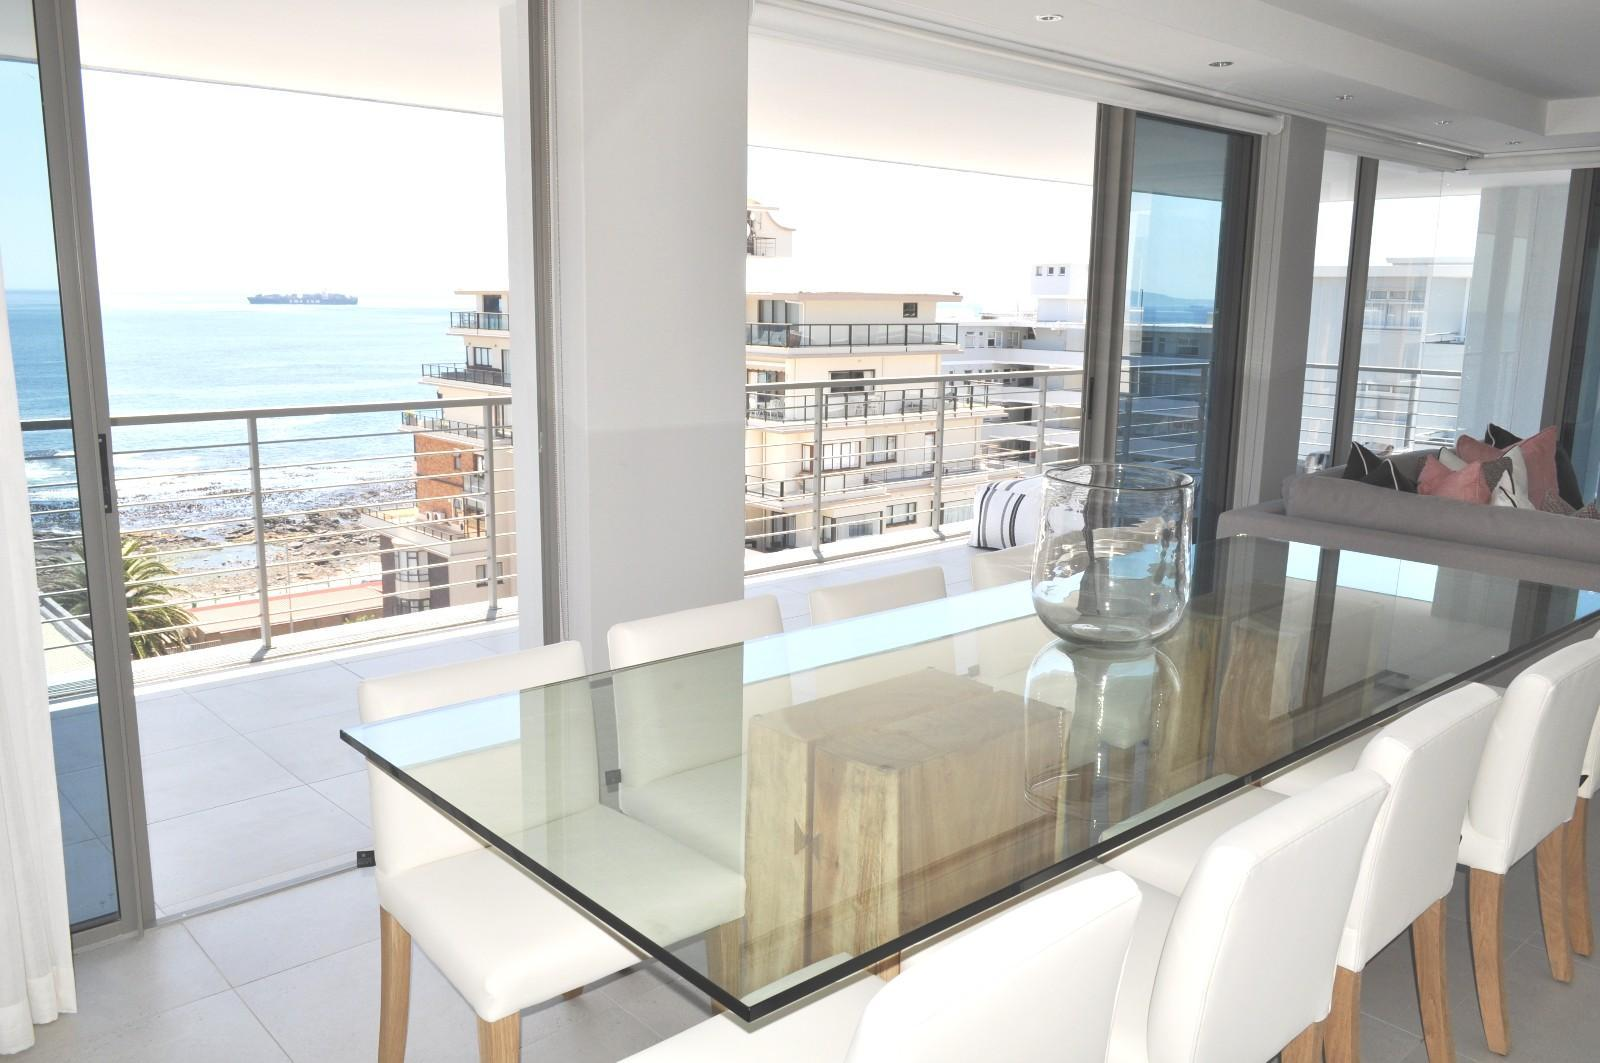 Apartment in Sea Point - Dining area with sea view